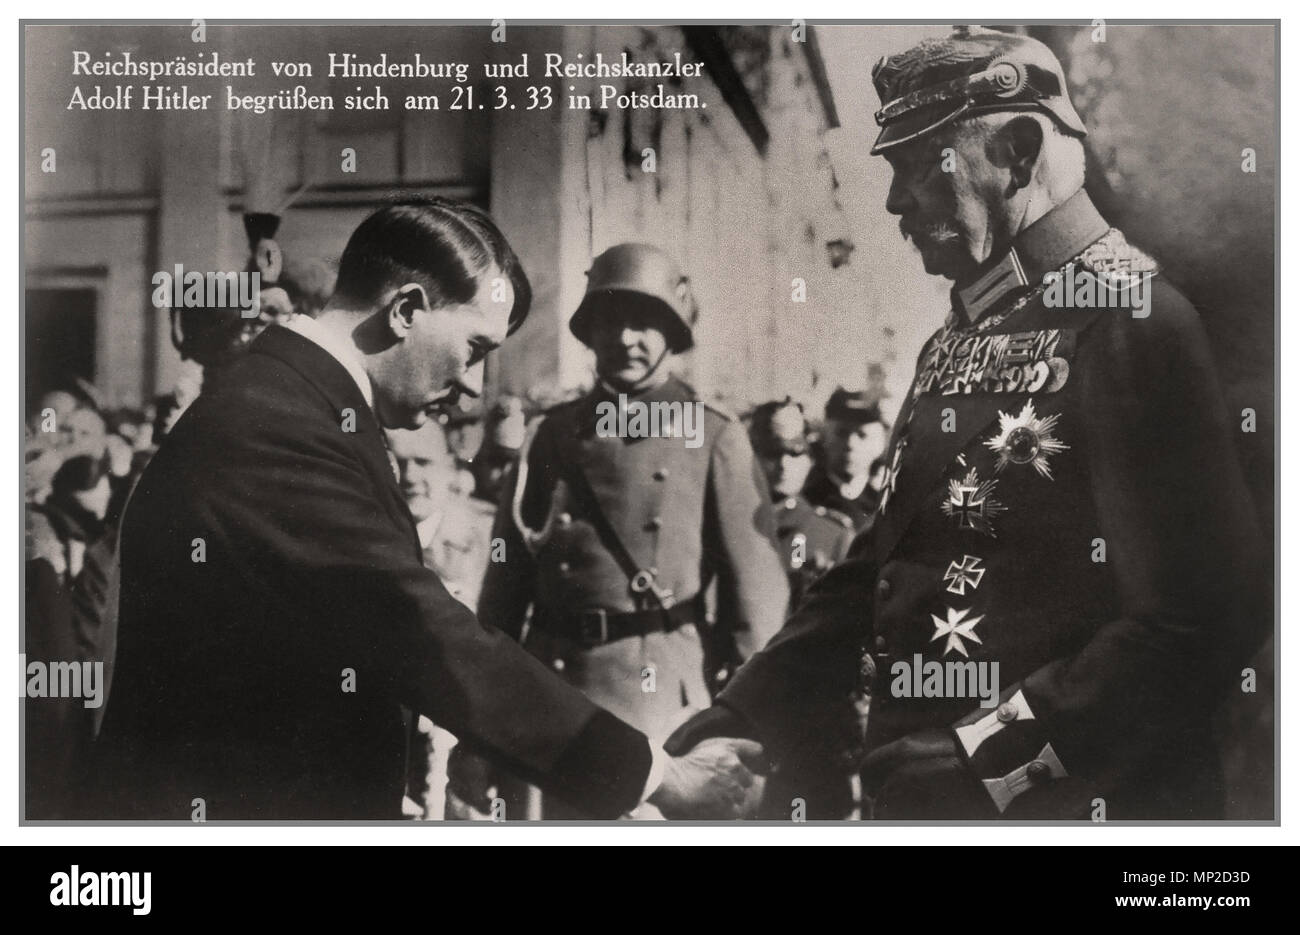 methods and strategies of hitler after Methods/strategies: after hindenburg died in 1934, hitler became president and abolished the title of reich president he wished to be known as the fuhrer – an all-embracing, total authority.